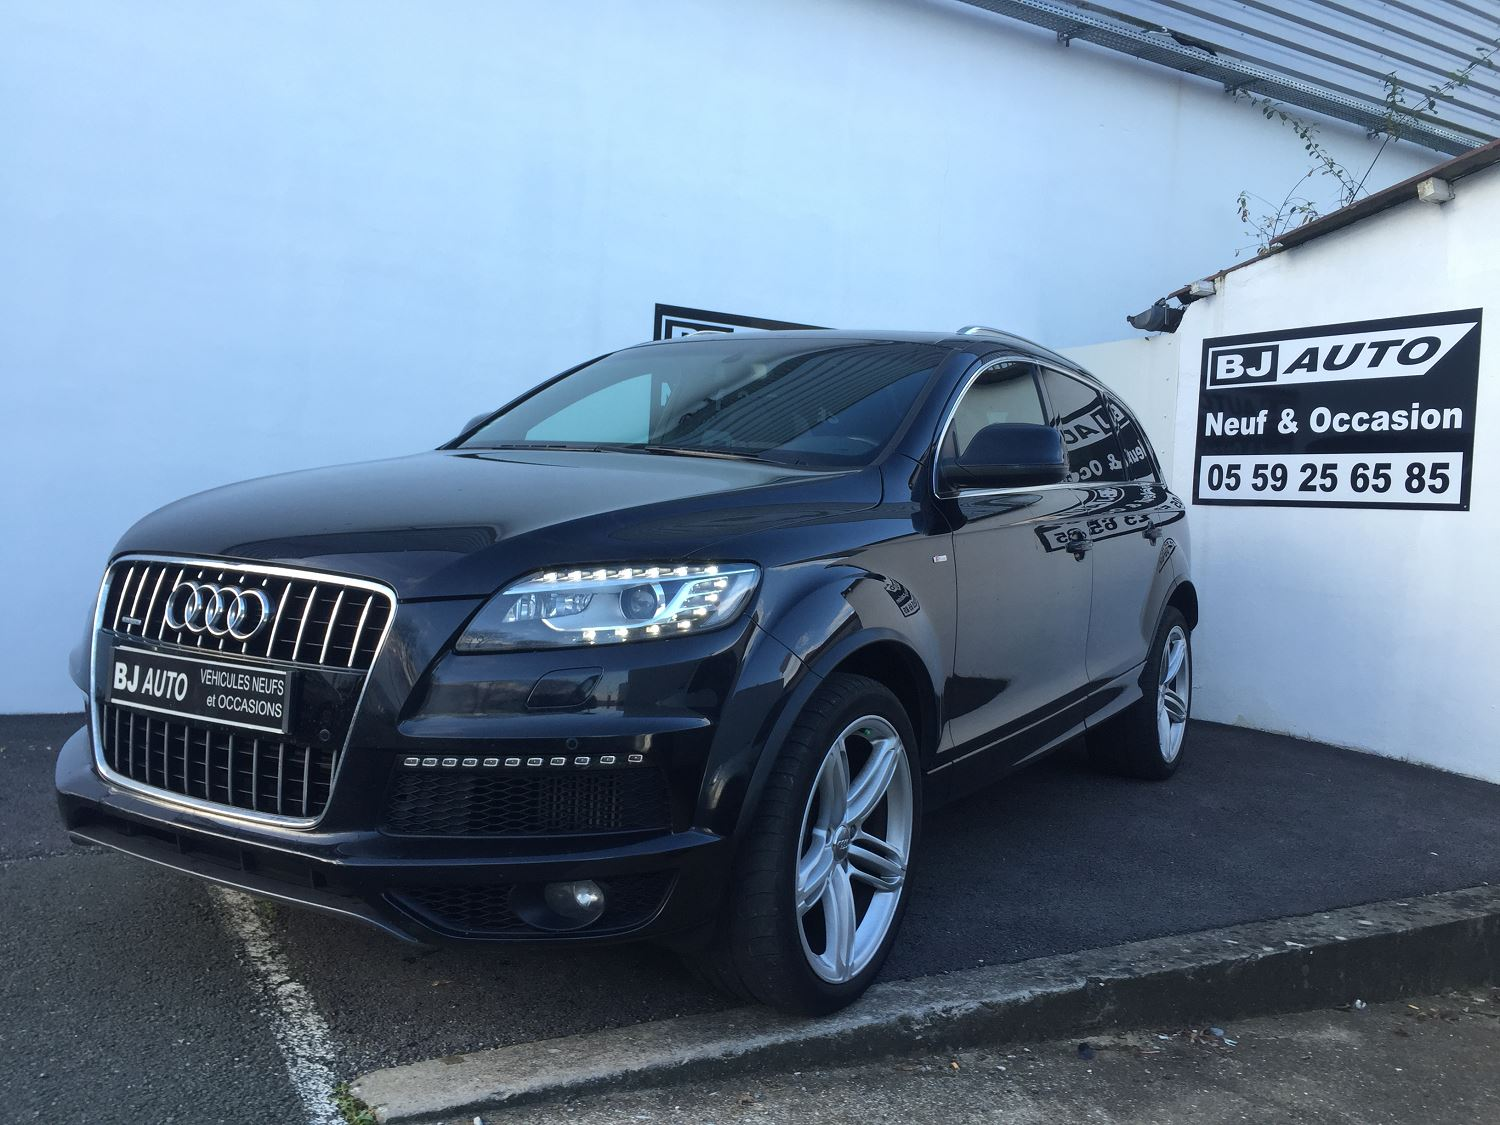 audi q7 bj auto pays basque et landes v hicules neufs et d 39 occasion. Black Bedroom Furniture Sets. Home Design Ideas